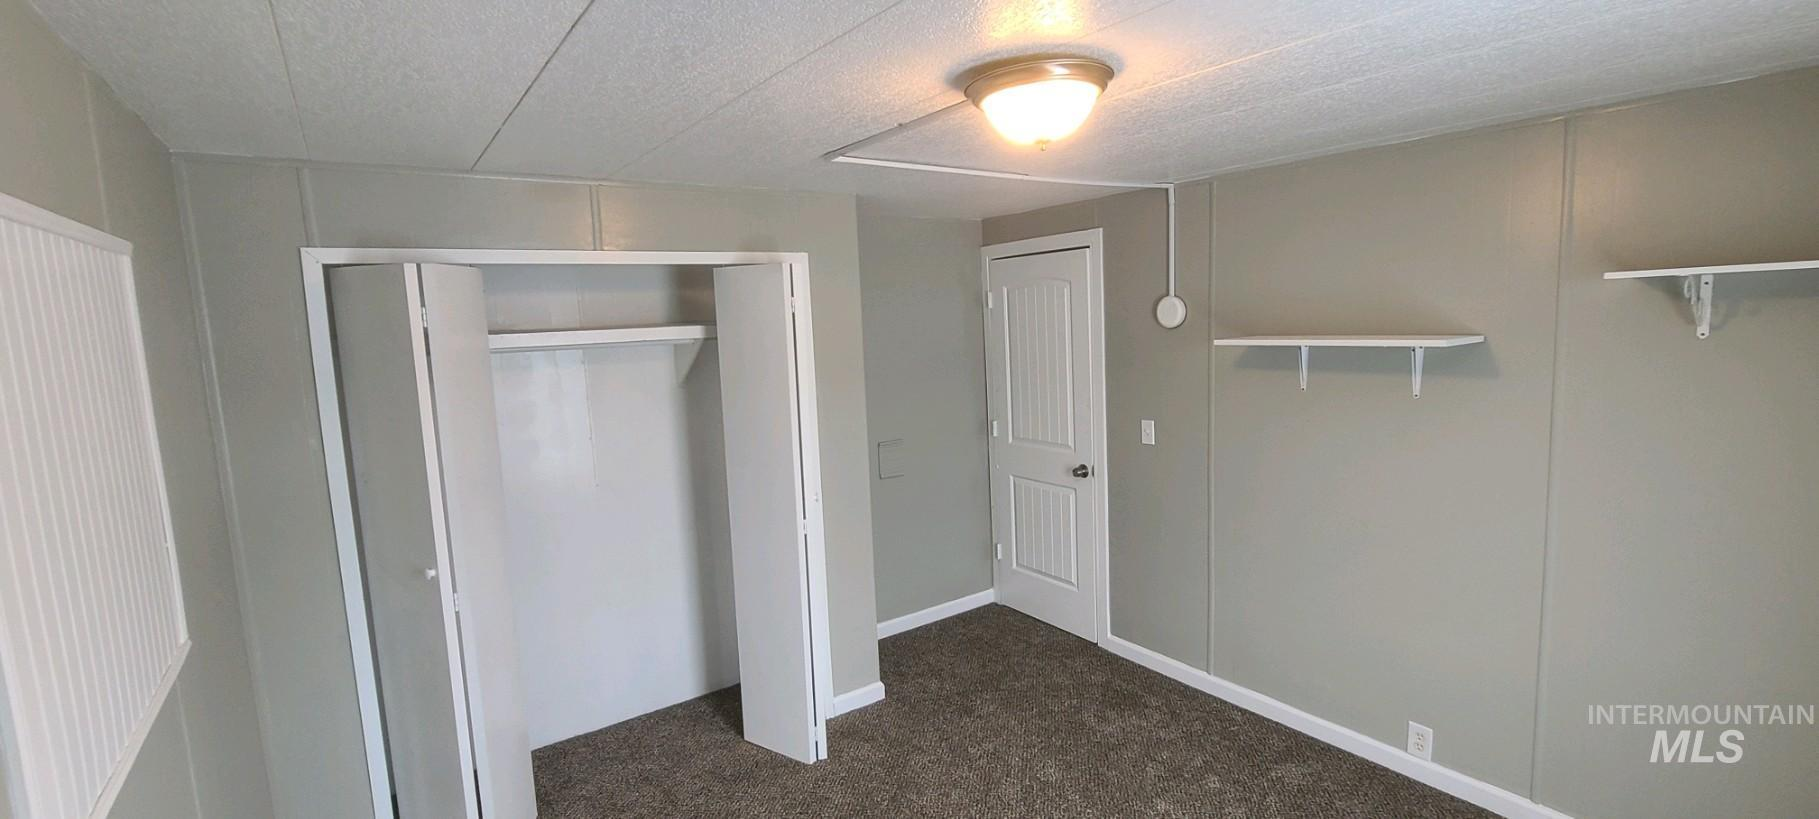 760 W Alameda Road # 28 Property Photo - Pocatello, ID real estate listing